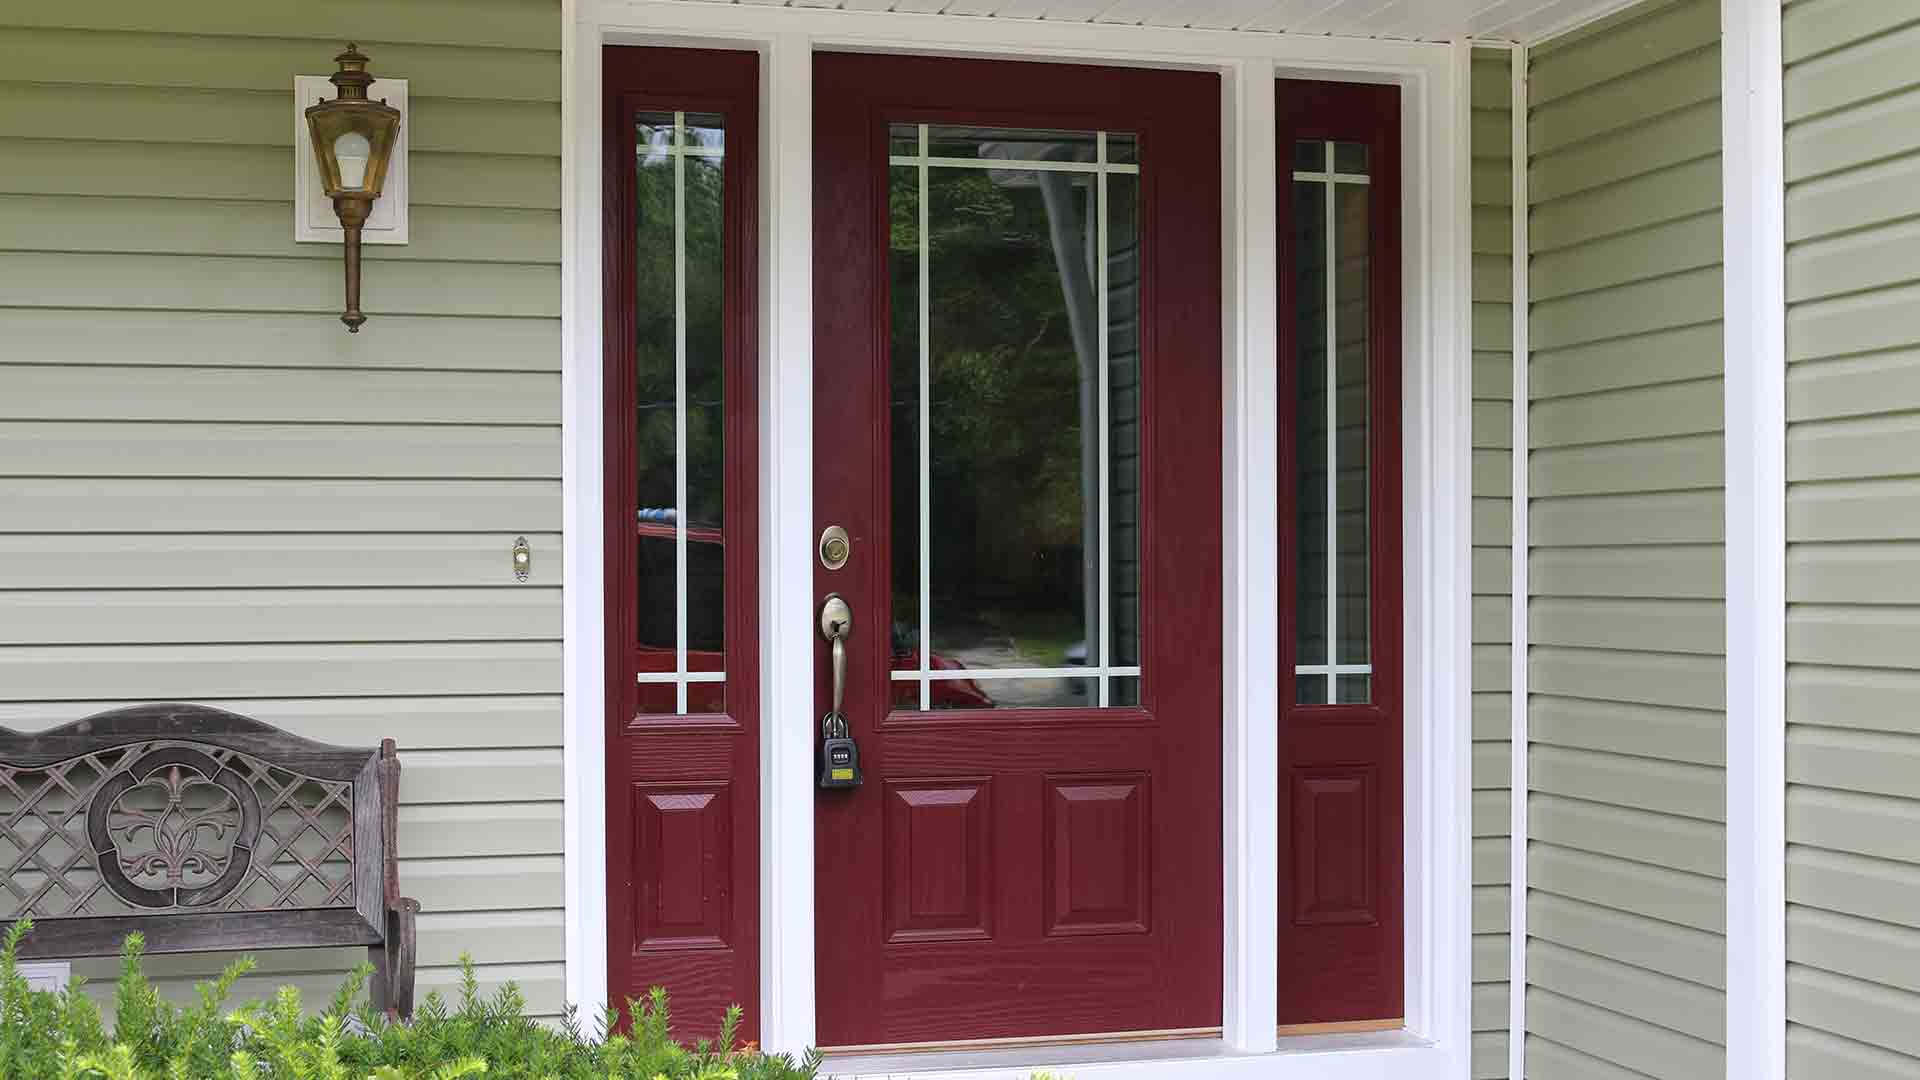 Entrance Doors Entry Doors Front Doors Patio Doors